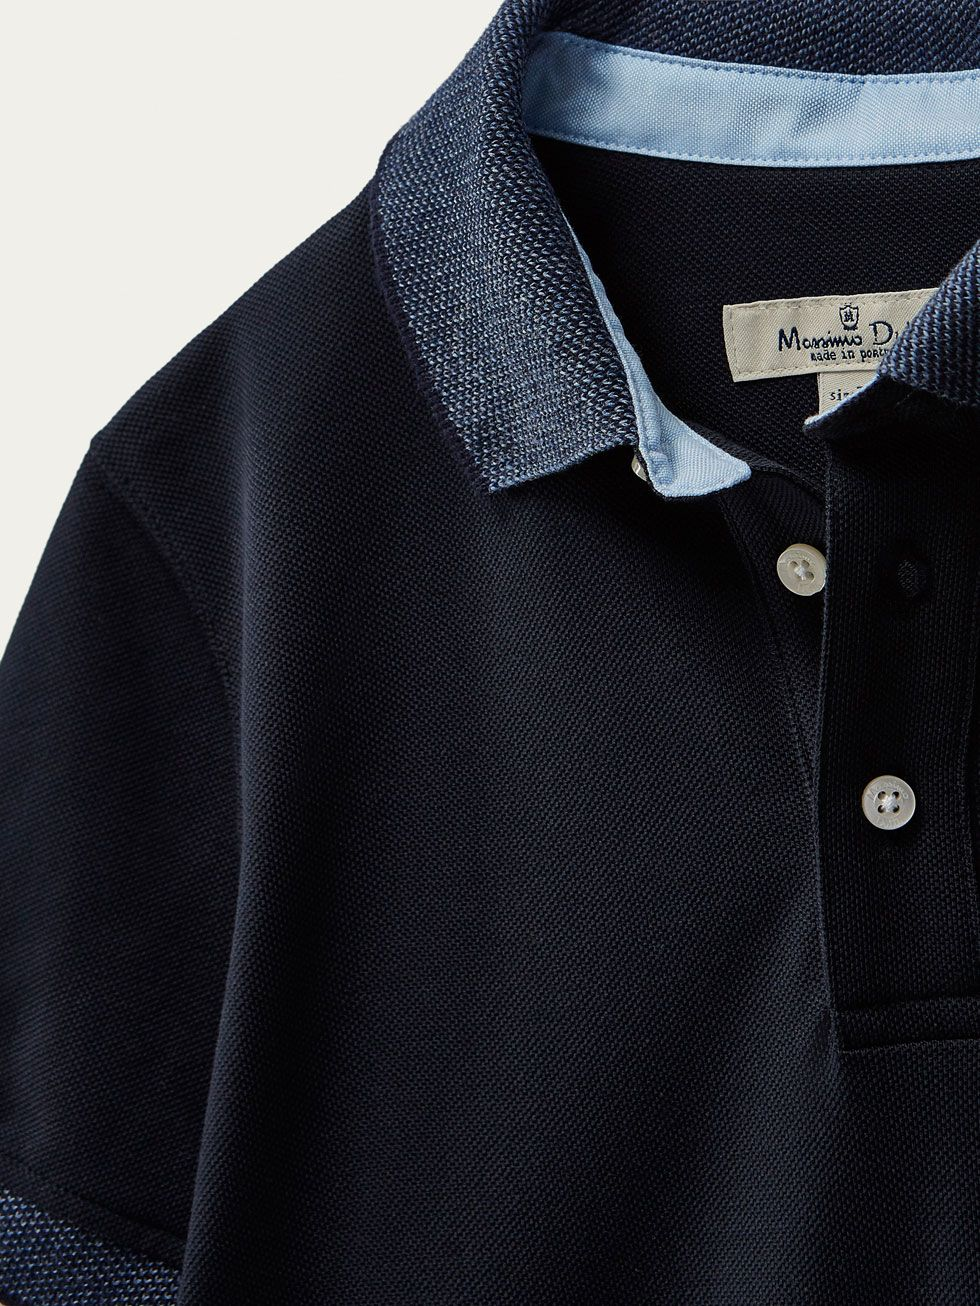 bb1480212 New In - NEW IN - Massimo Dutti Navy Blue Polo Shirts